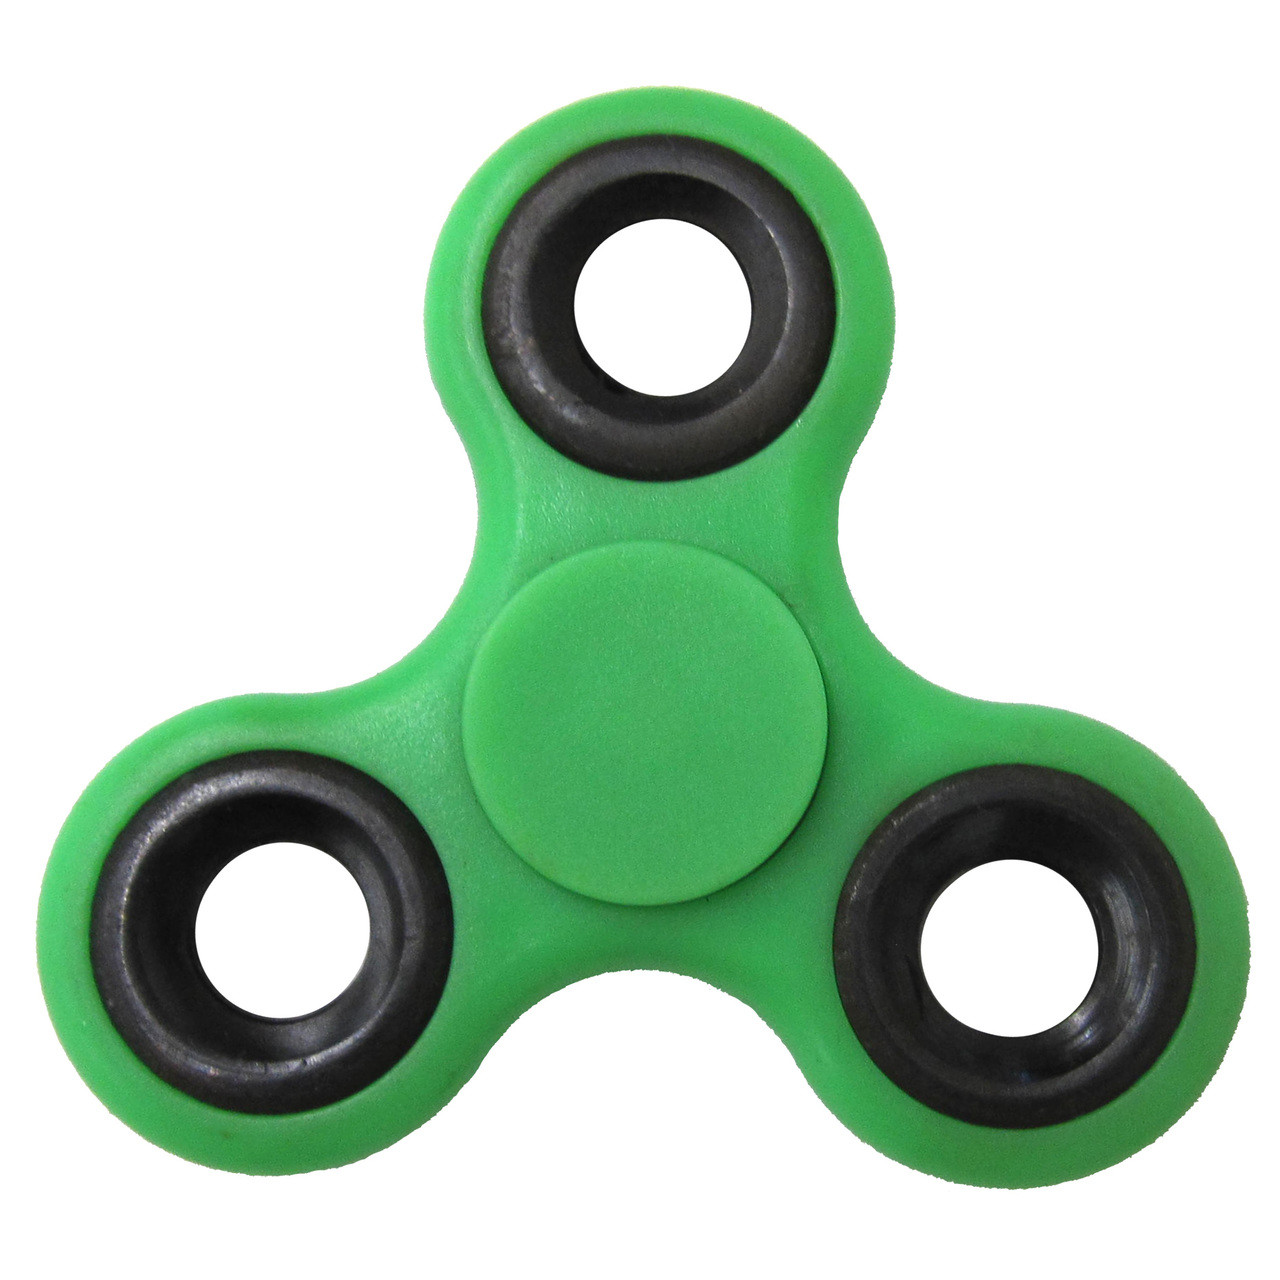 Green Fidget Spinners